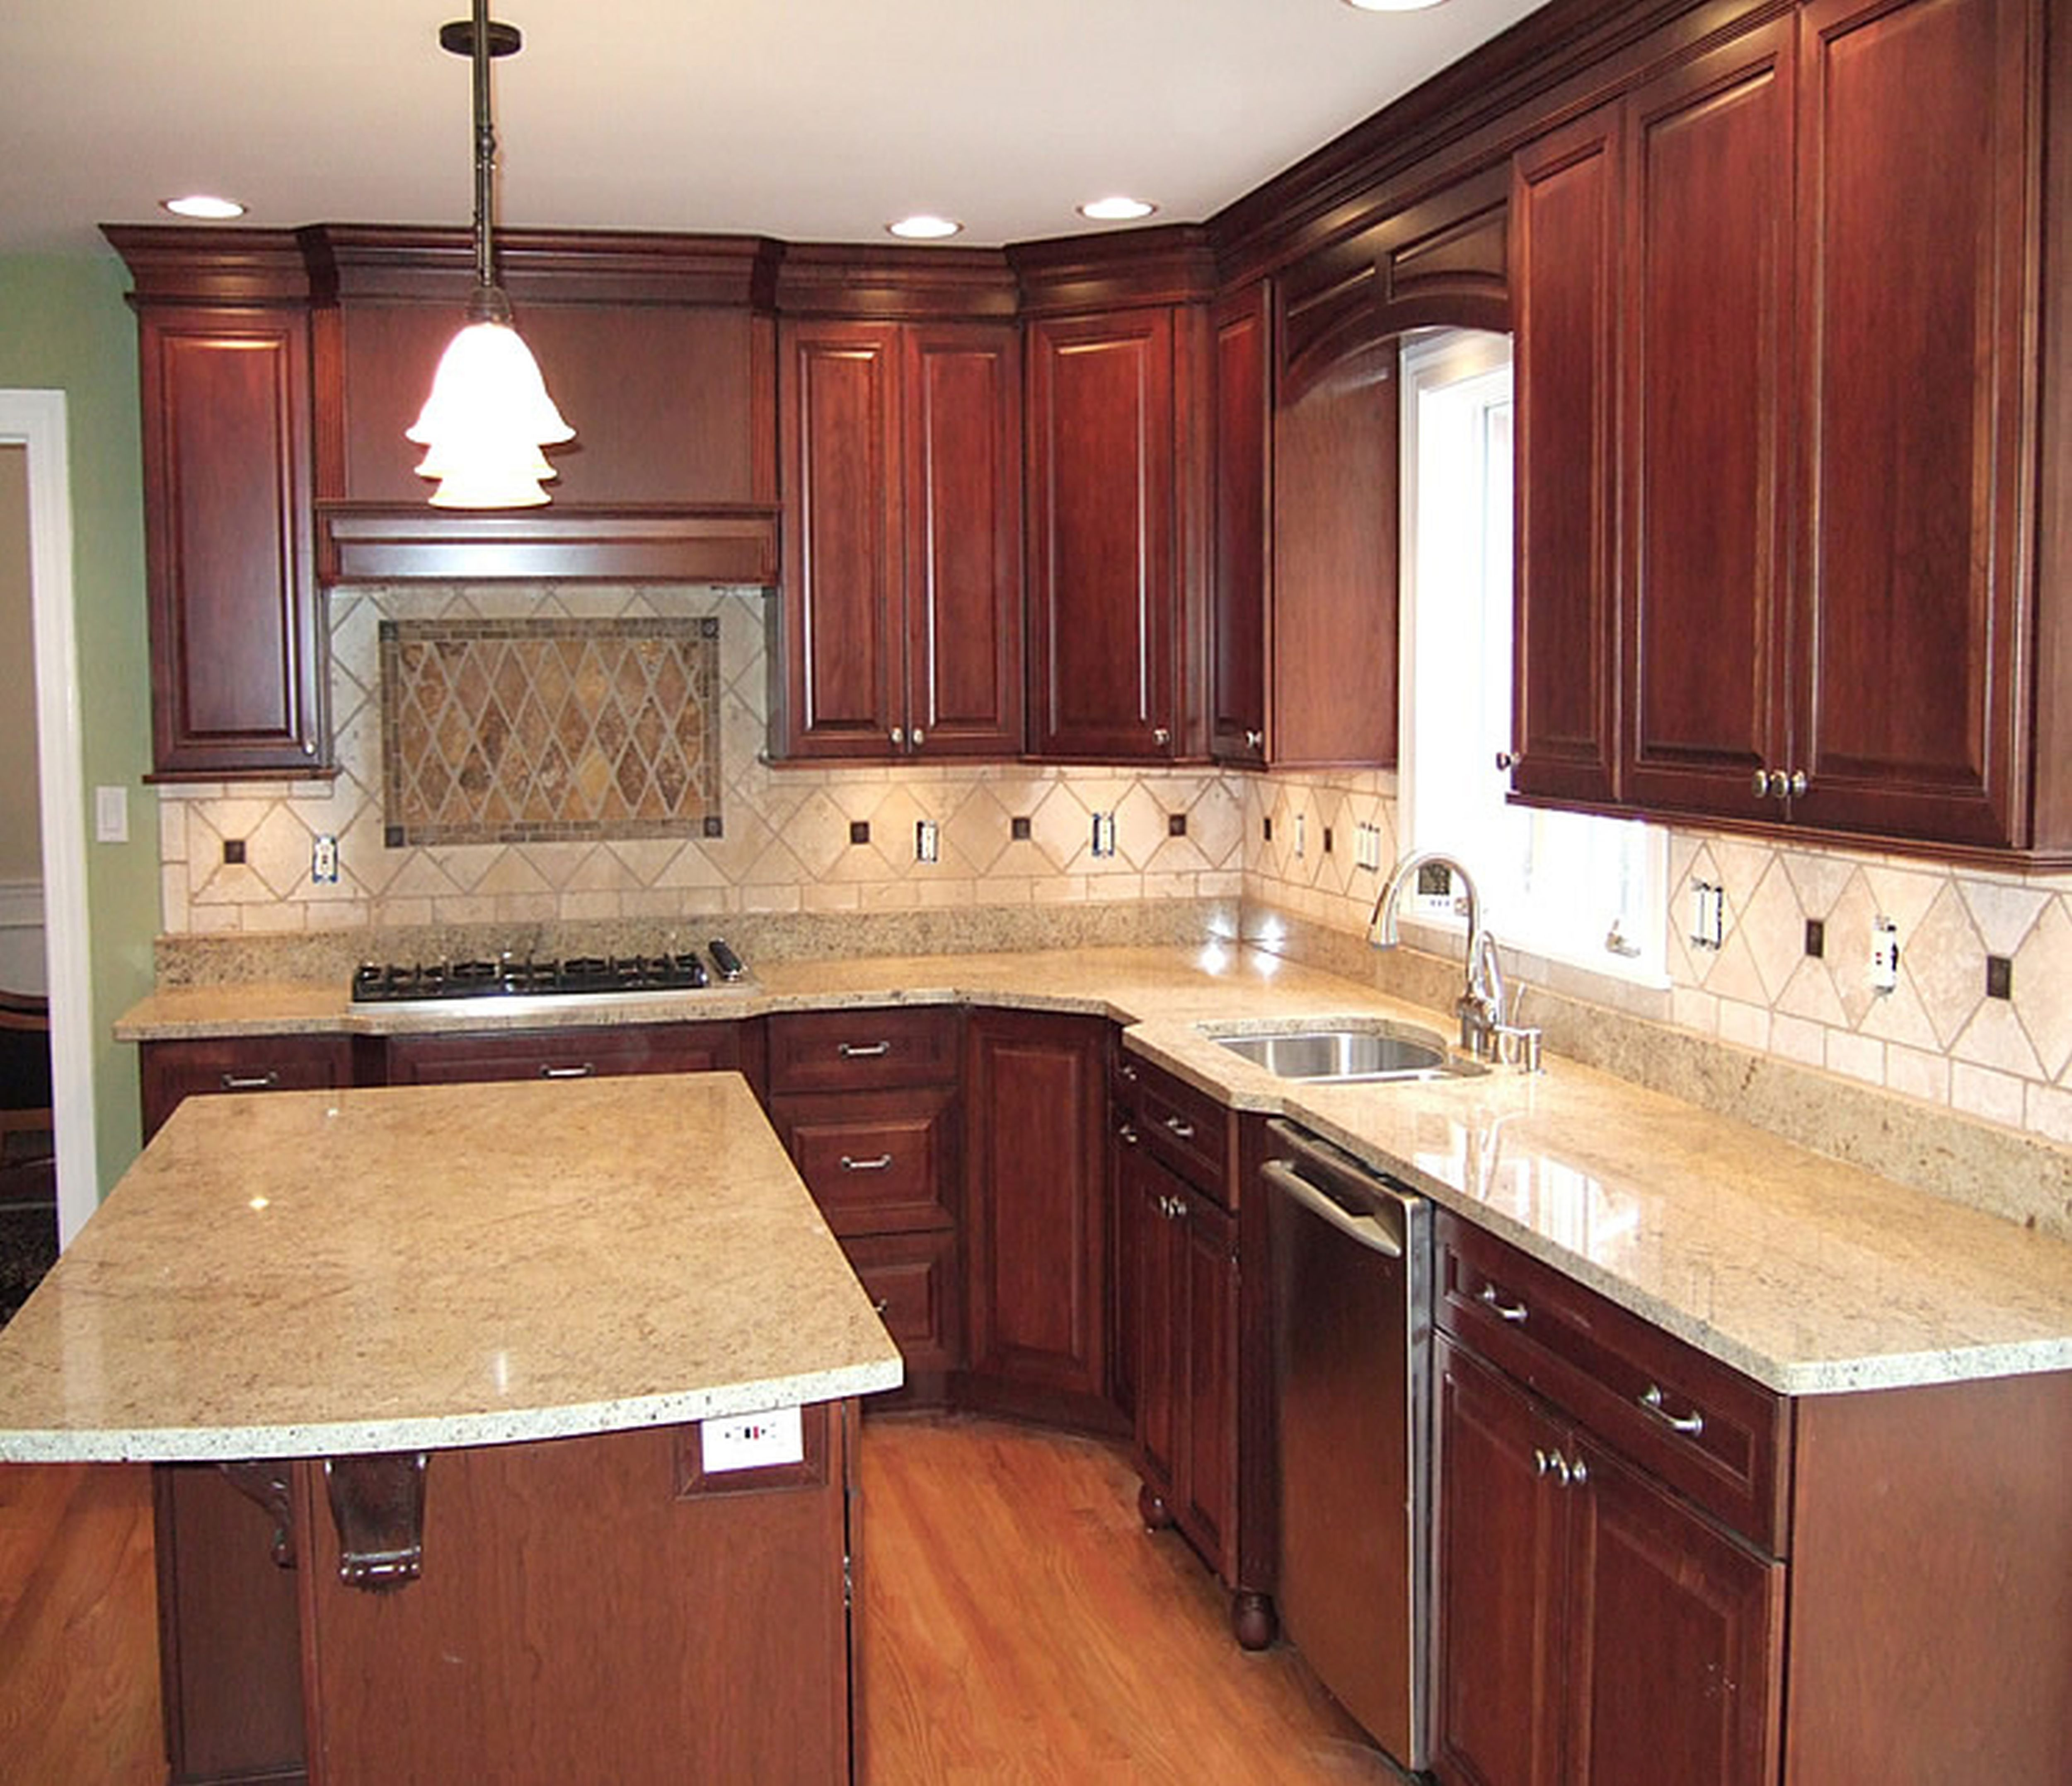 kitchencollaboration kitchen plans inspiring cabinets kitchens from s of stock best island backsplash